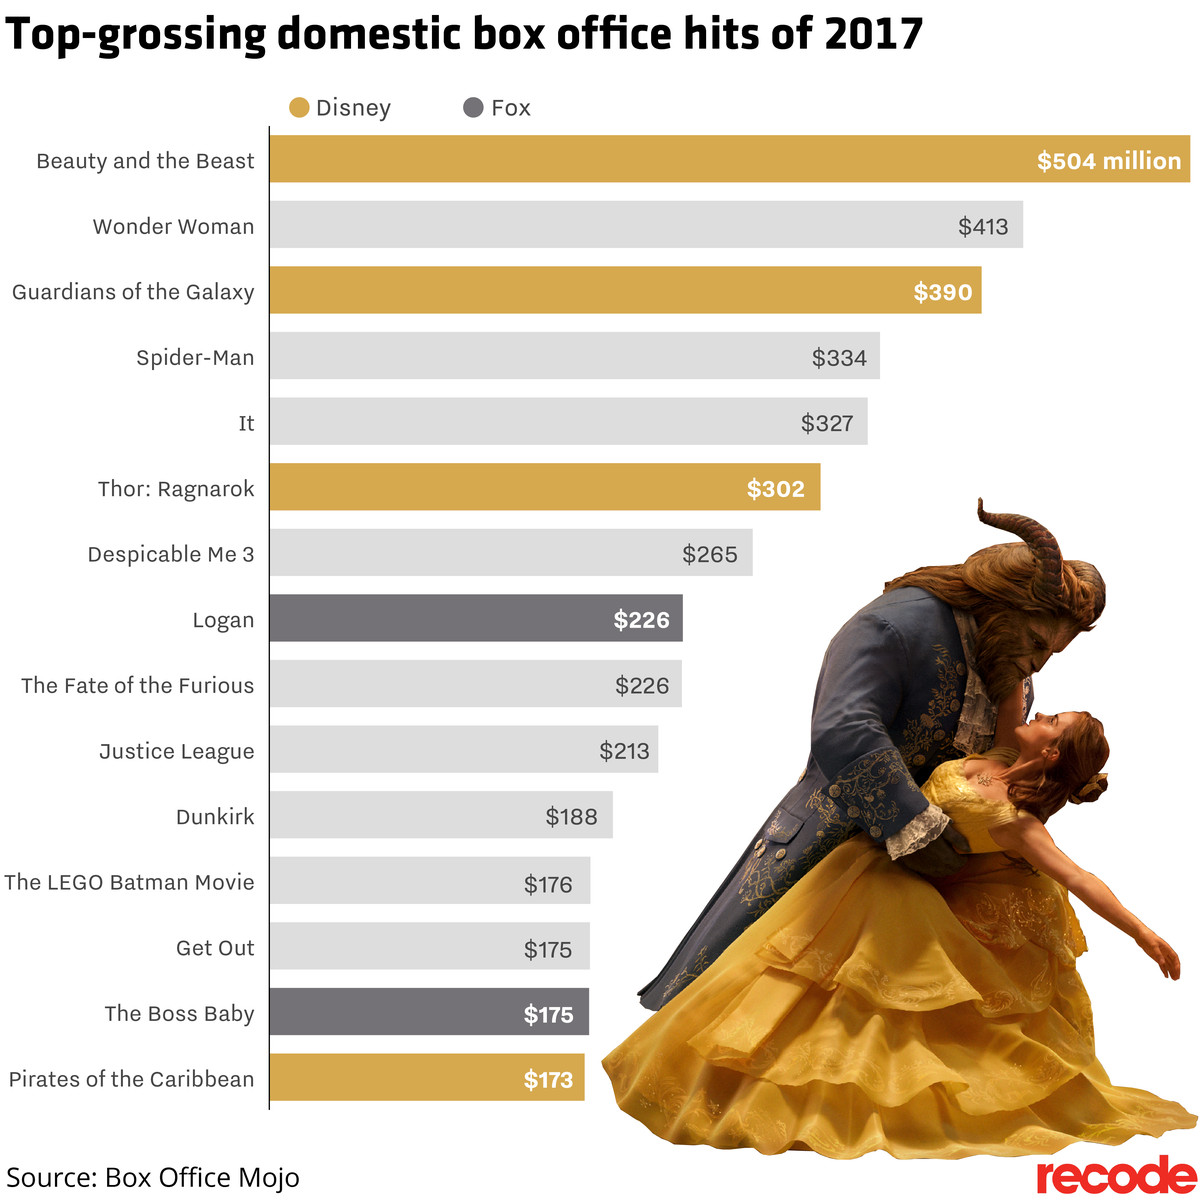 Top-grossing domestic box office hits of 2017